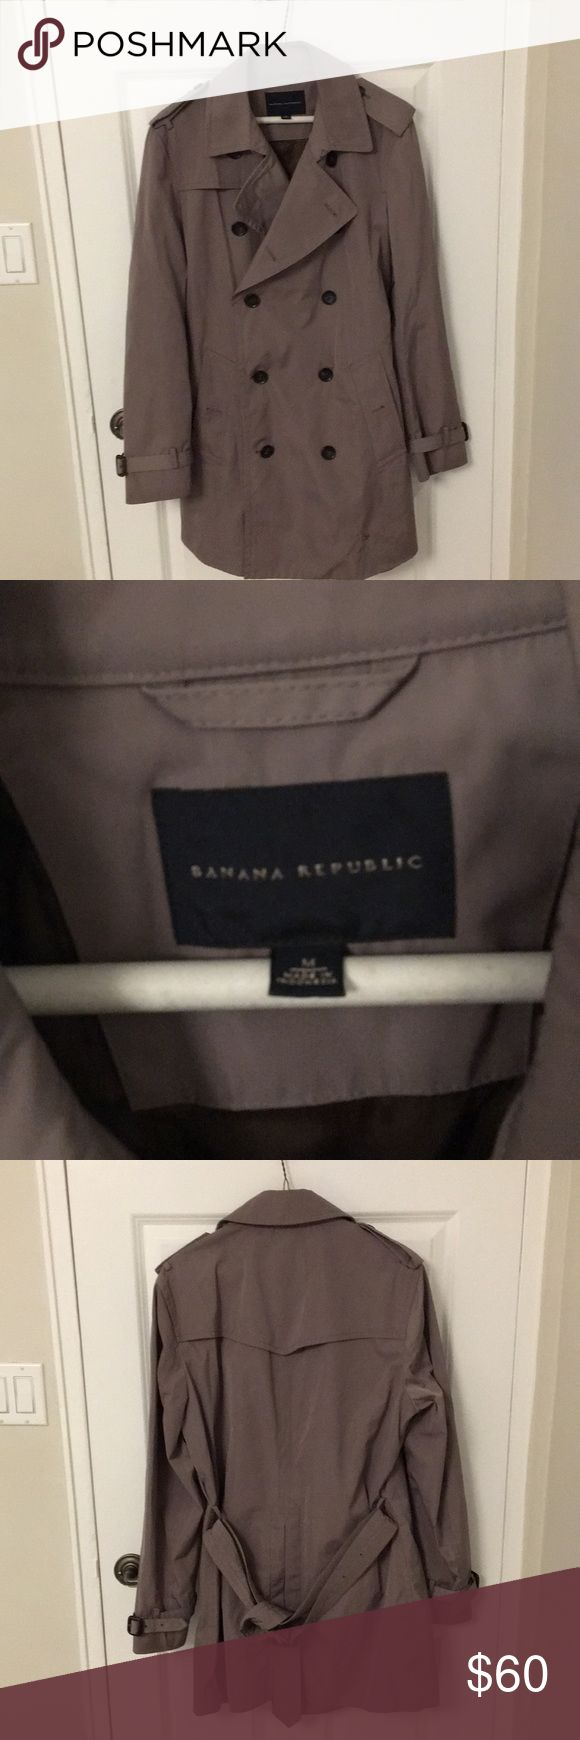 Men's Banana Republic Trench Coat Mens medium banana republic trench/rain coat. the coat is a khaki/taupe color and there is a small stain at the bottom left side of the coat (as seen in picture). the coat has a belt and is double breasted. Banana Republic Jackets & Coats Trench Coats